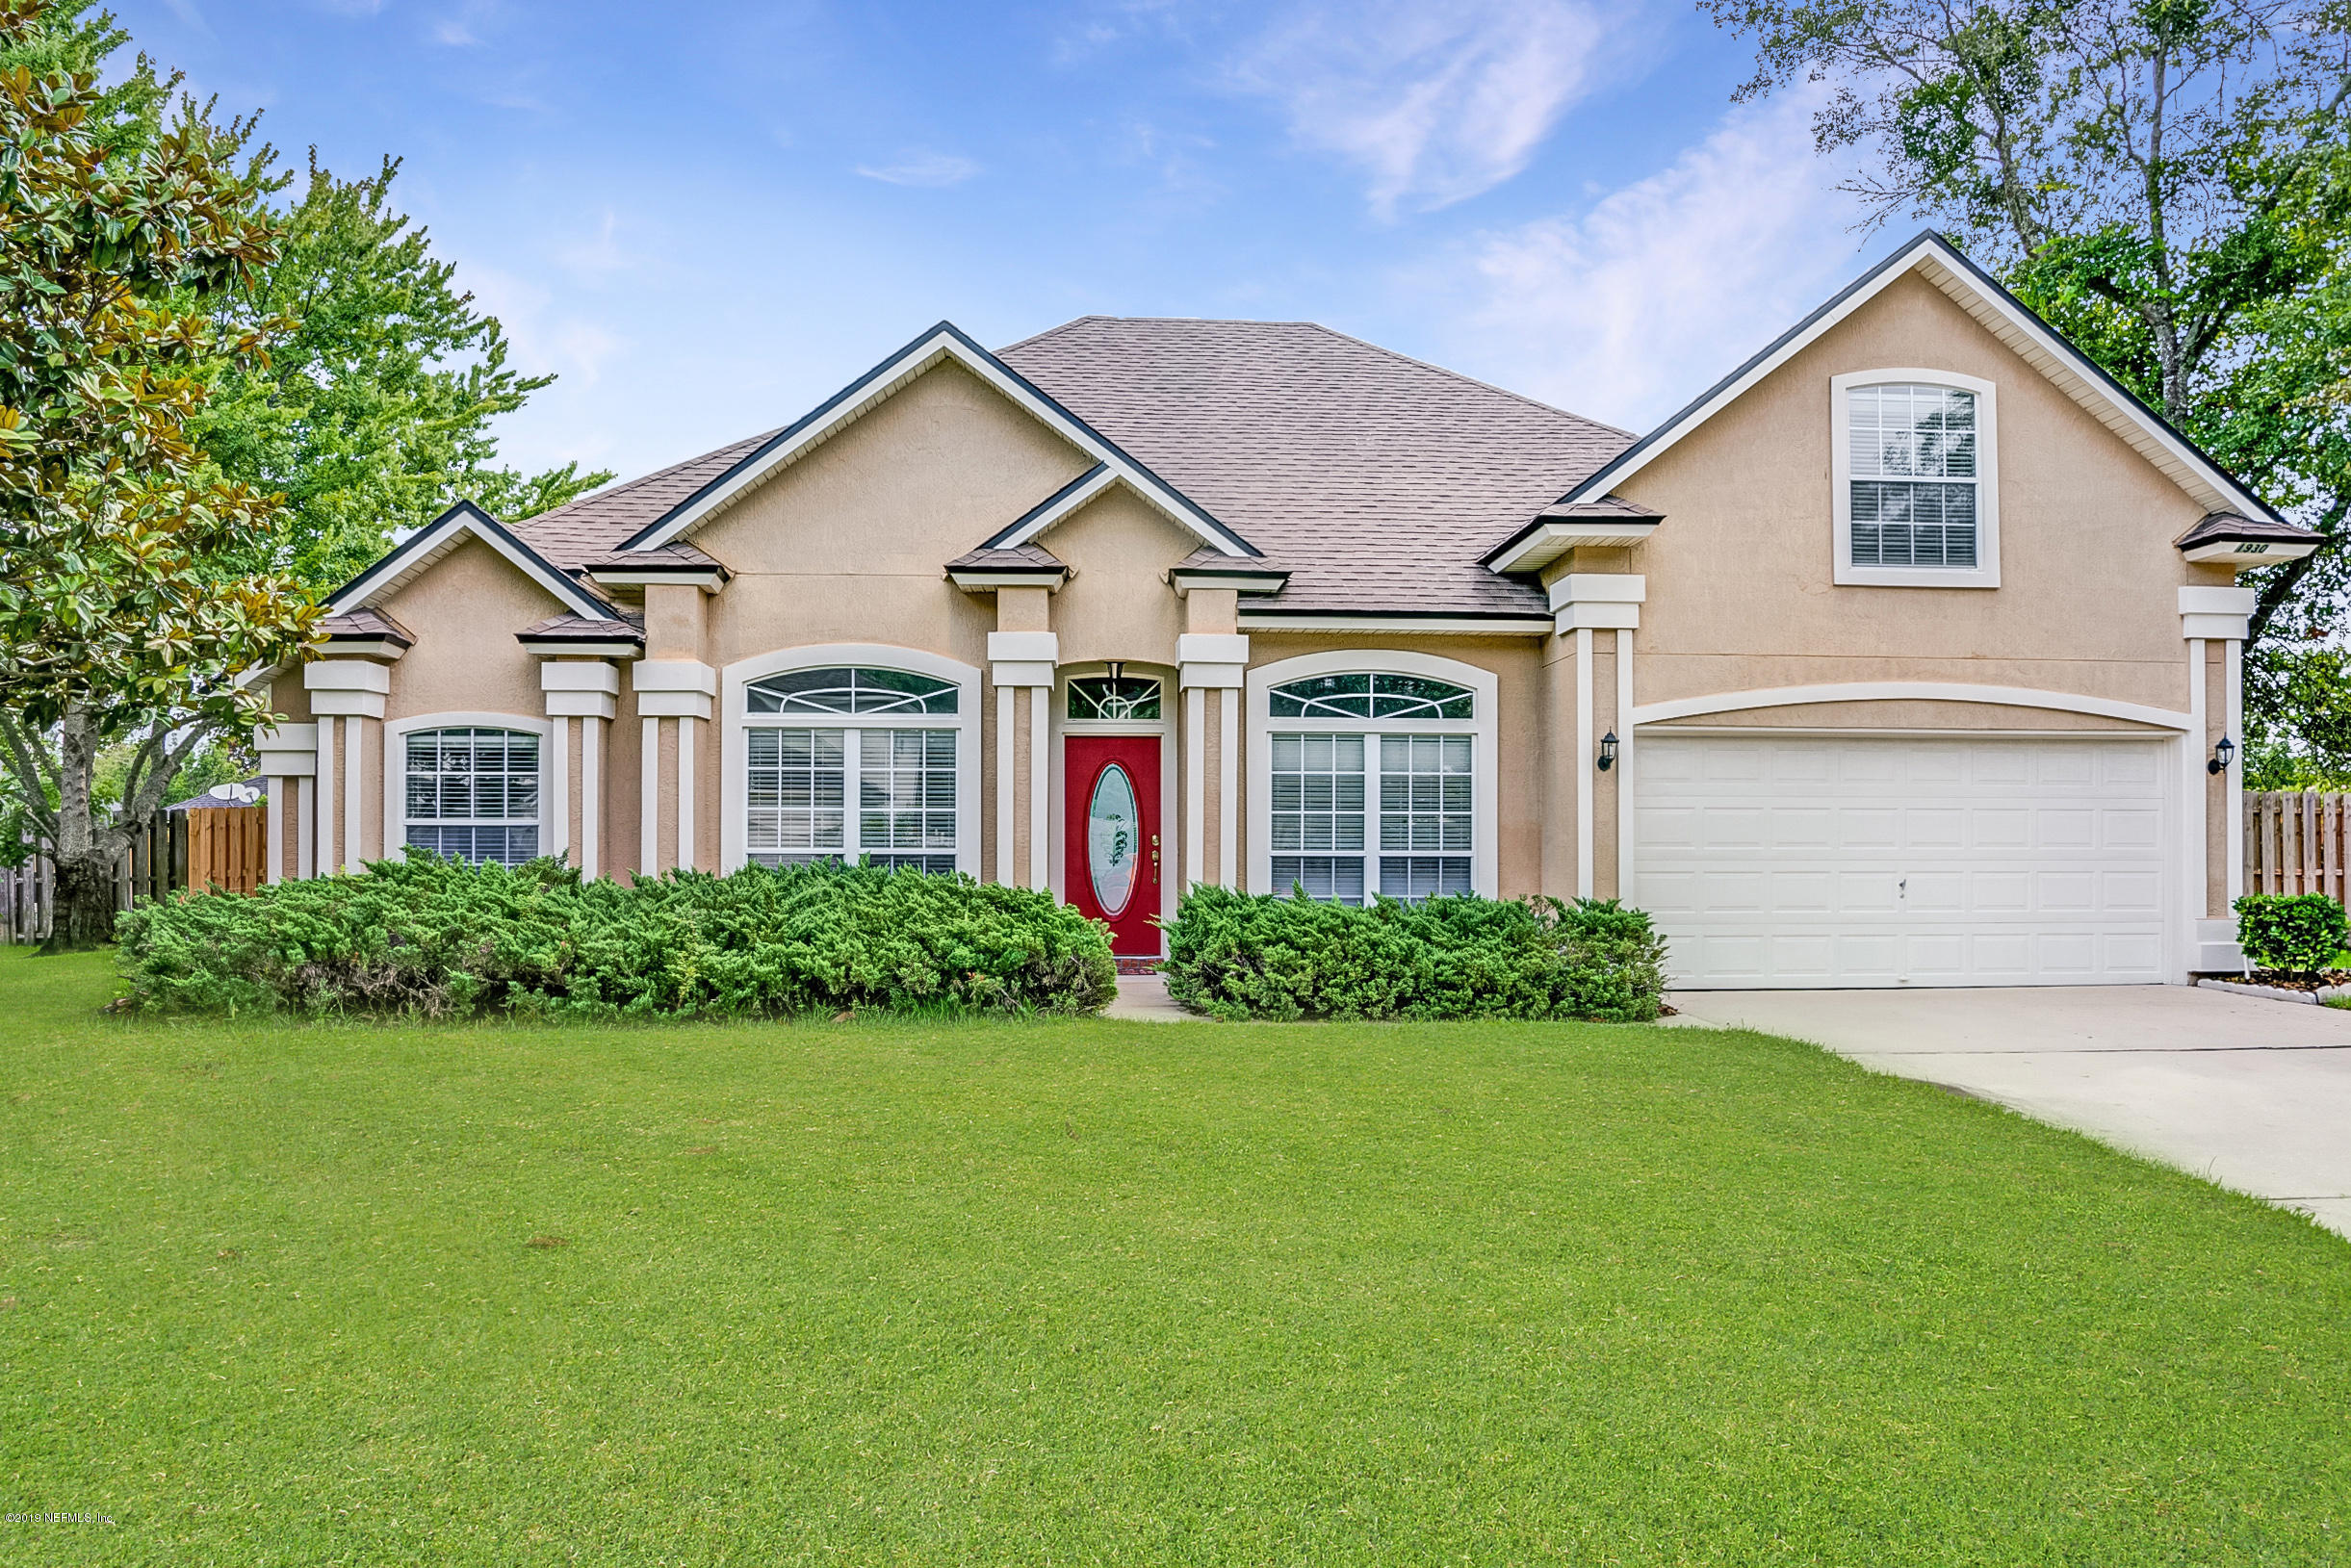 1930 WINDY, ST JOHNS, FLORIDA 32259, 5 Bedrooms Bedrooms, ,3 BathroomsBathrooms,Residential - single family,For sale,WINDY,1006798